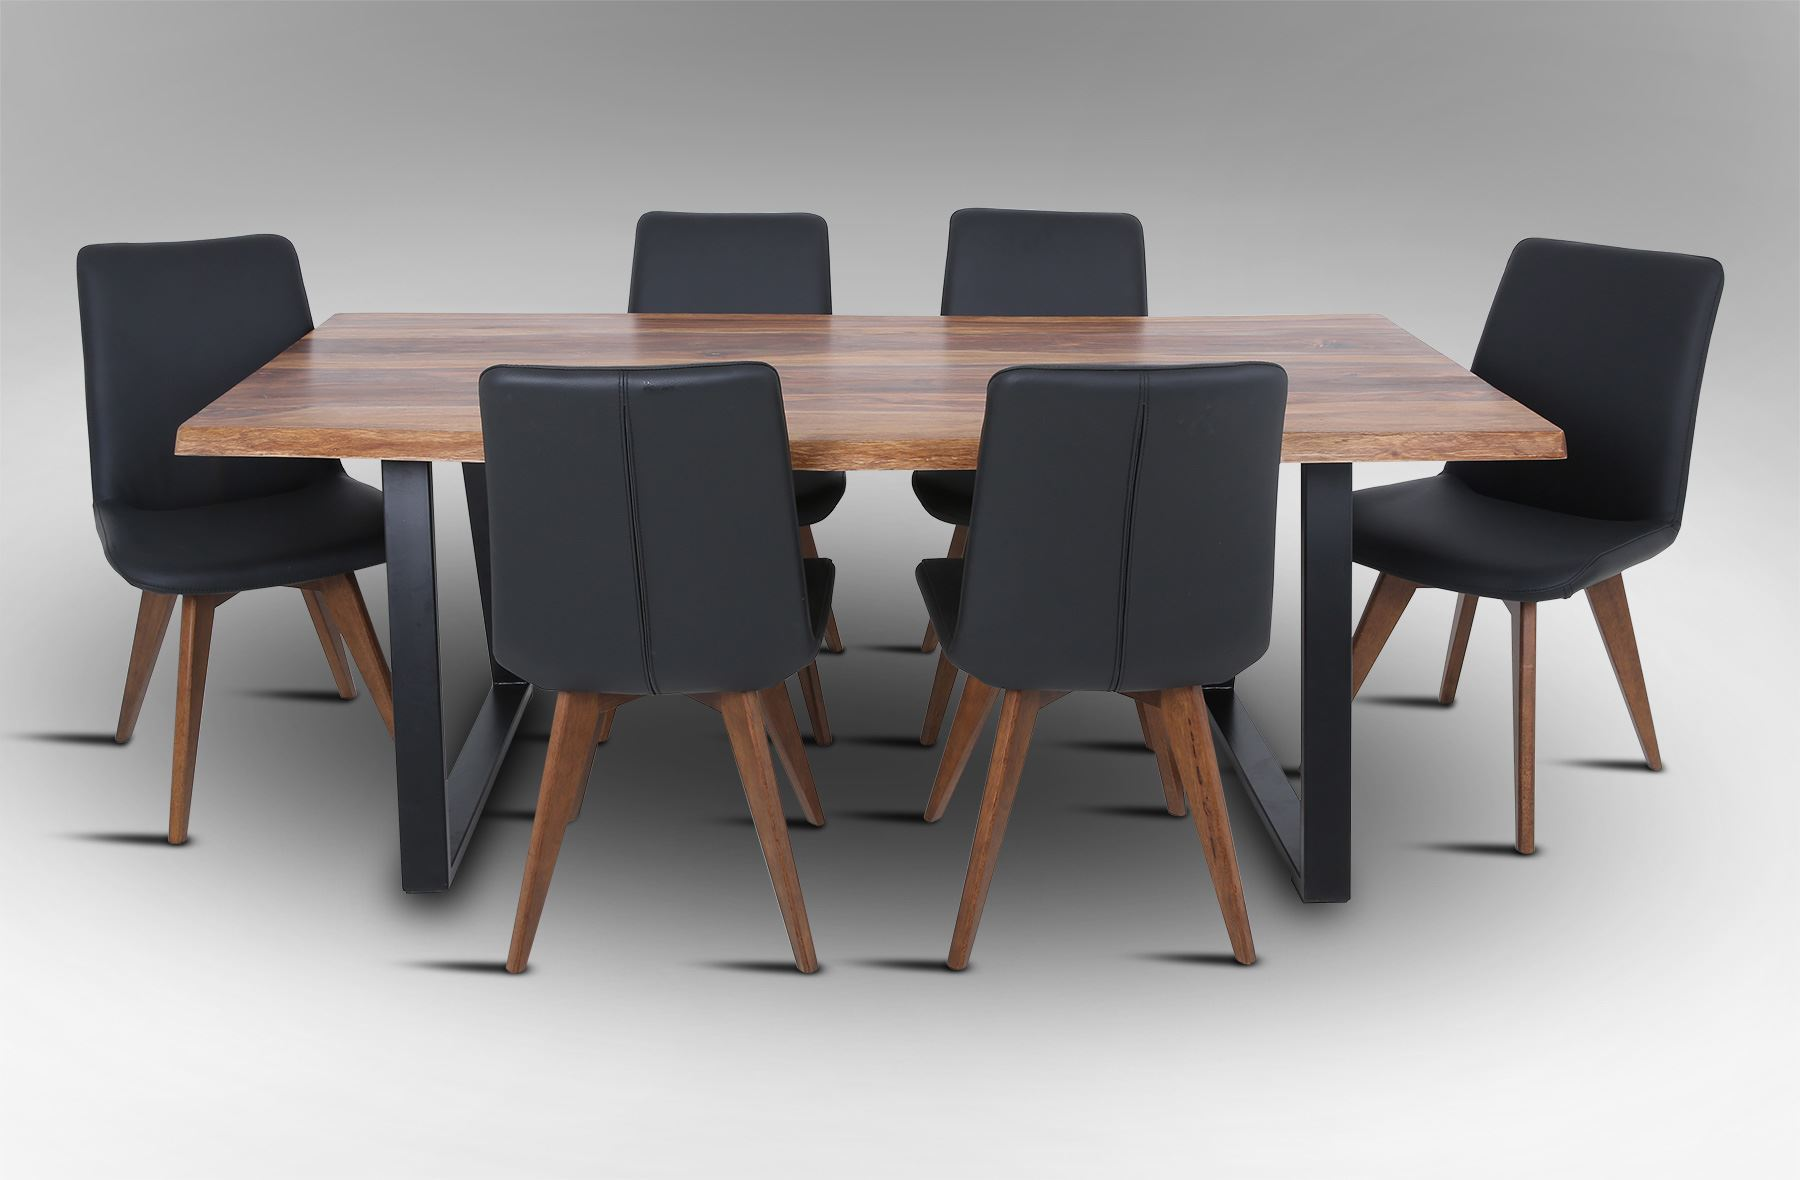 Rice Furniture Rio 2000 Dining Table with 6 Hilton Leather Dining